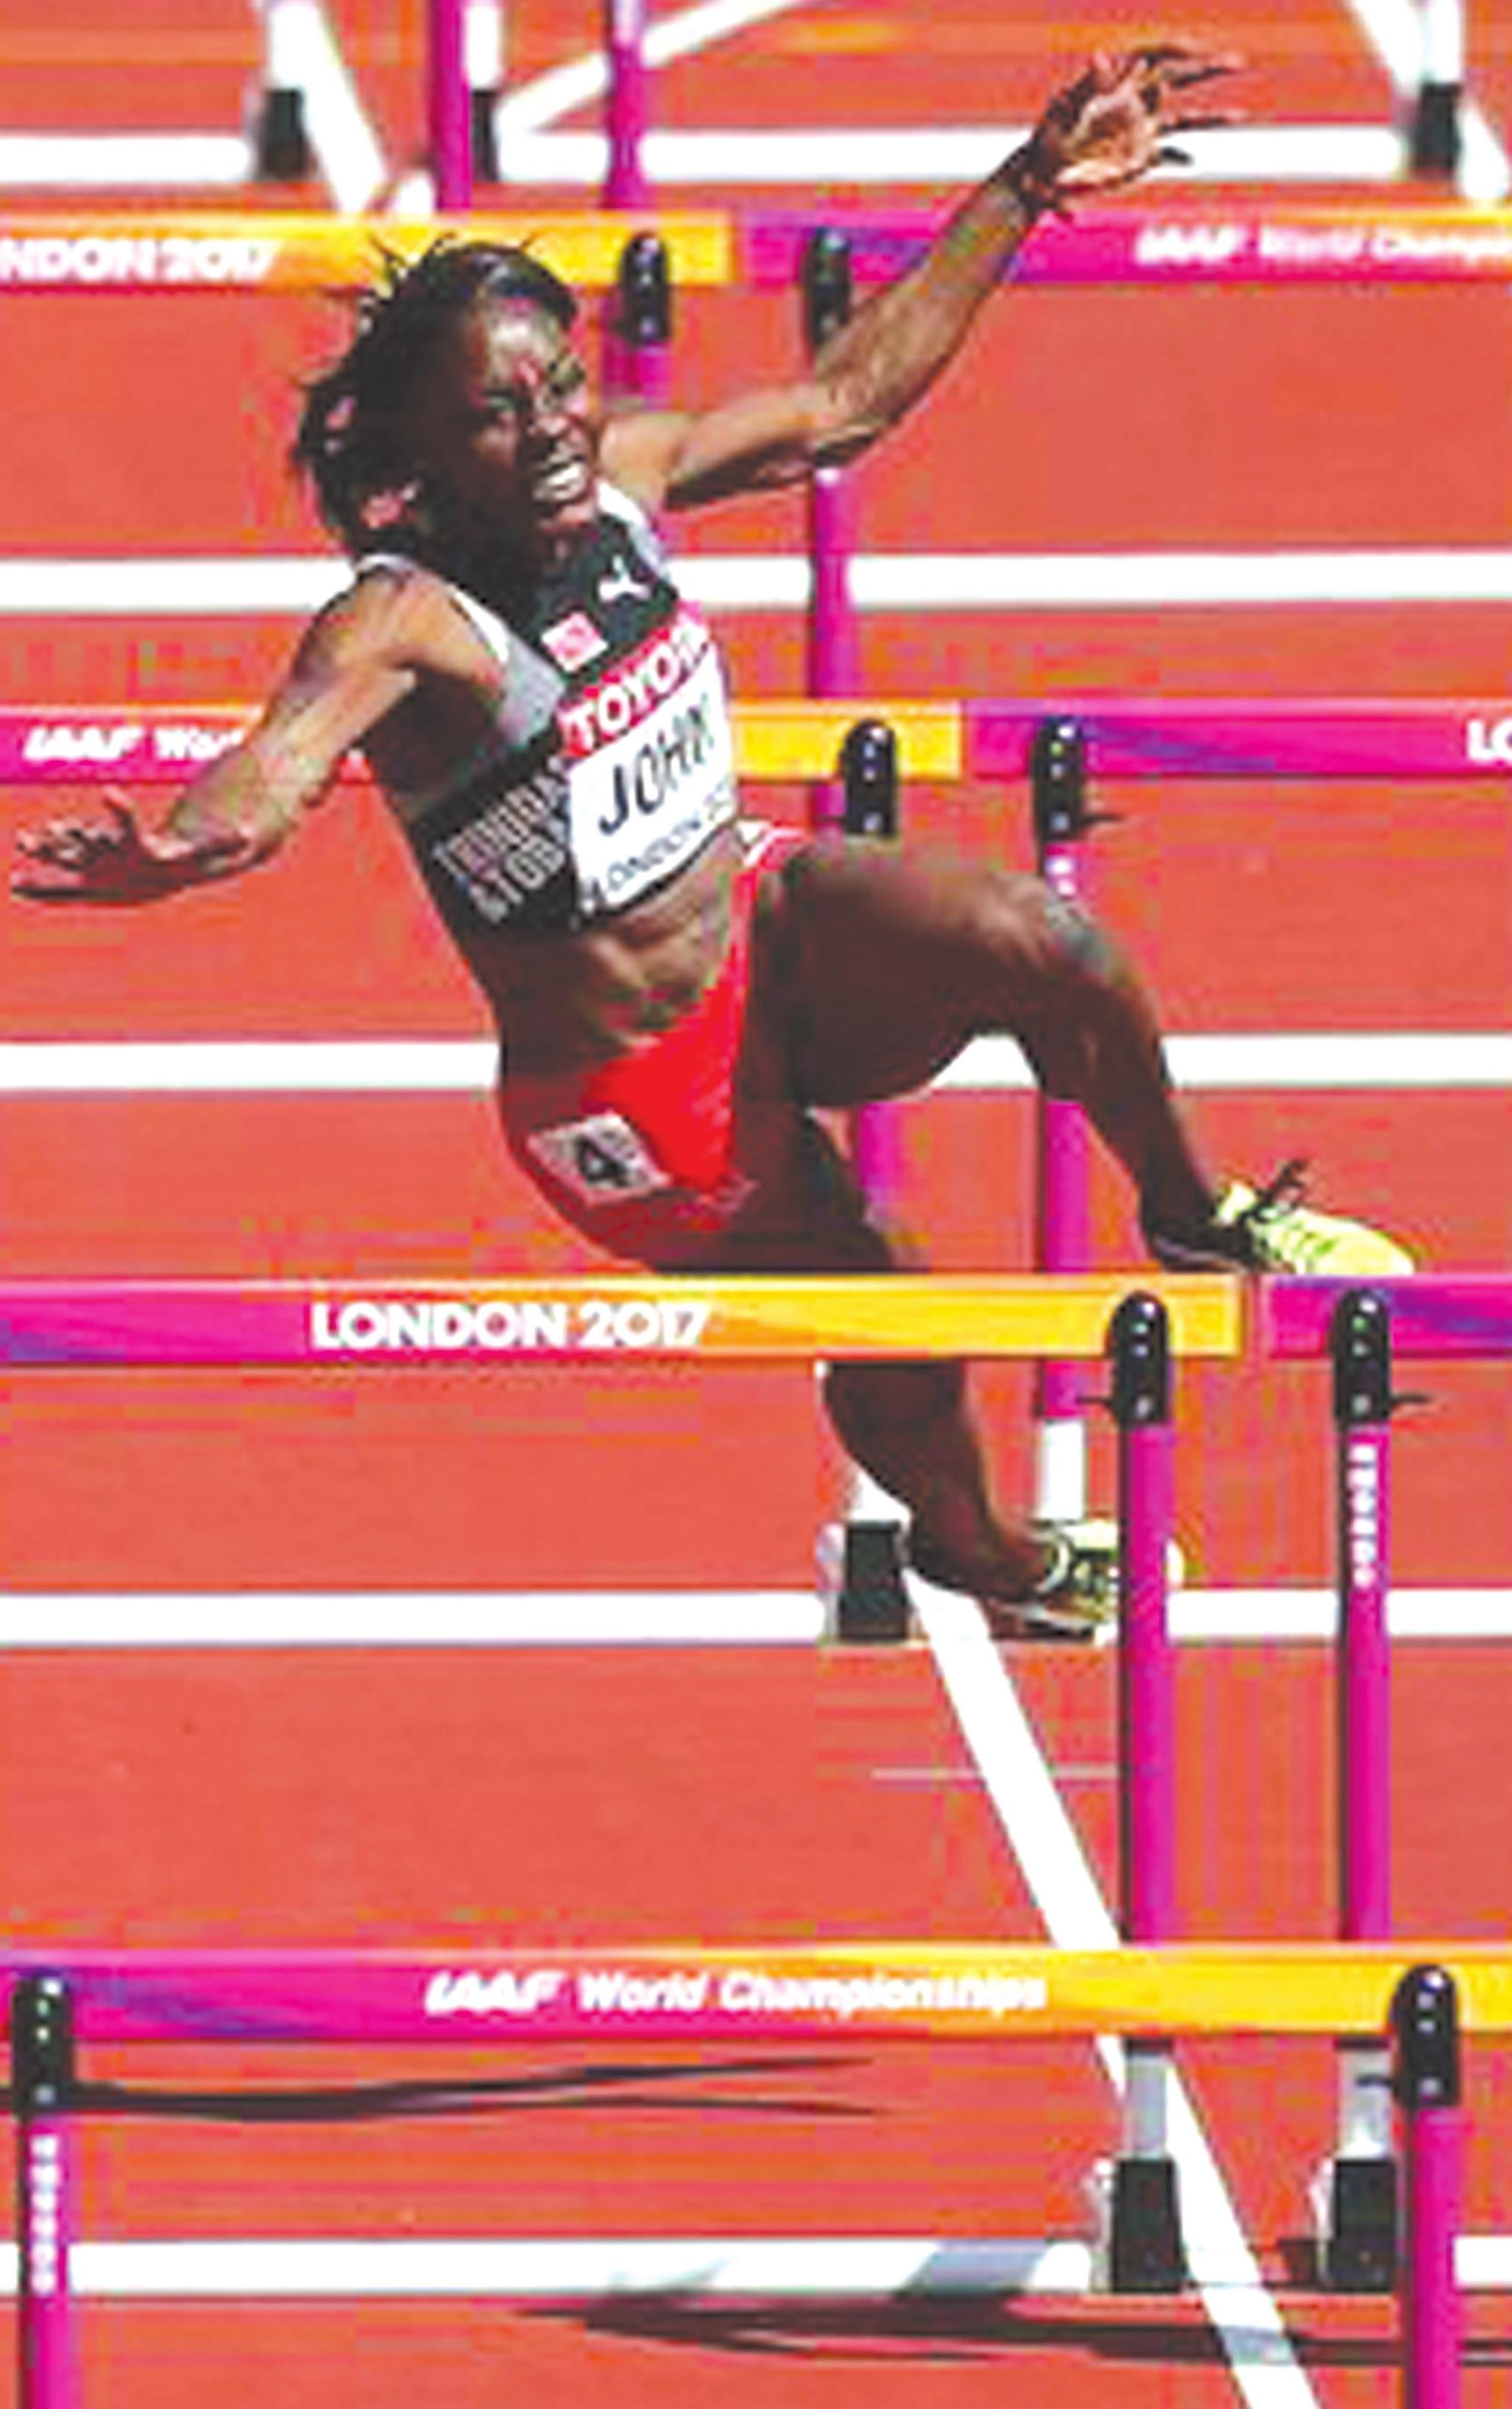 Deborah John competes during the 2017 World Championships in London for her home country of Trinidad and Tobago. Provided